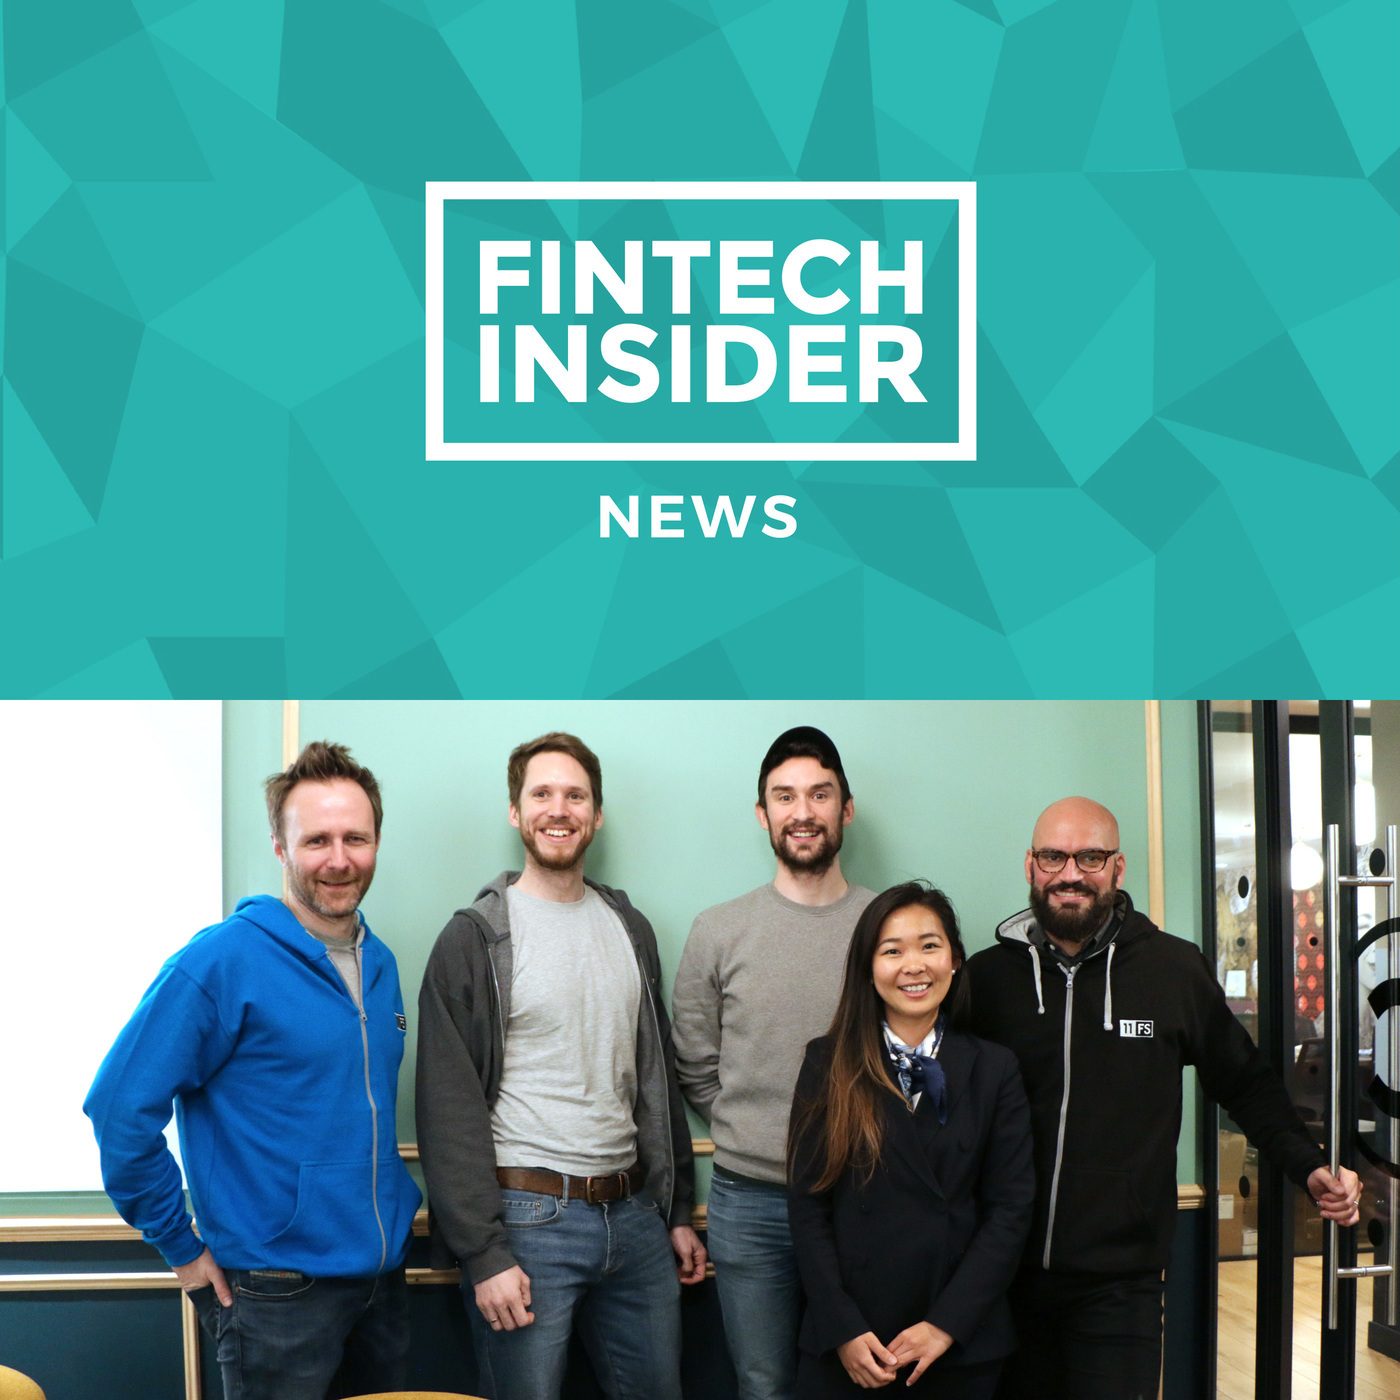 Fintech Insider by 11:FS: Ep. 192. News: Everyone and their grandmother is buying into it